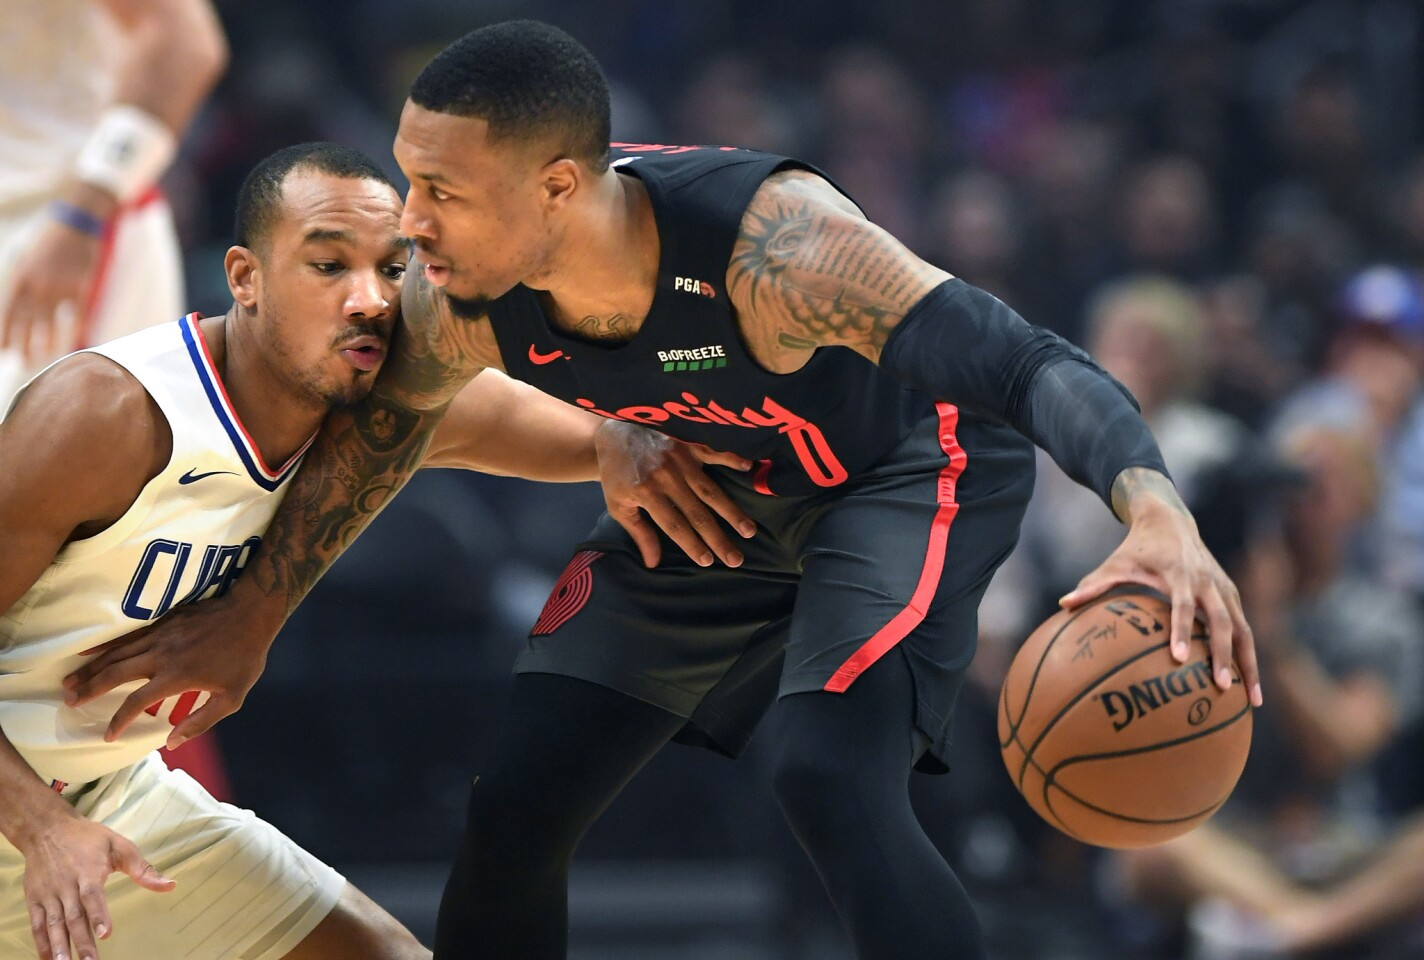 Clippers guard Avery Bradley defends Trailblazers guard Damian Lillard in the 1st quarter at the Staples Center on Monday.